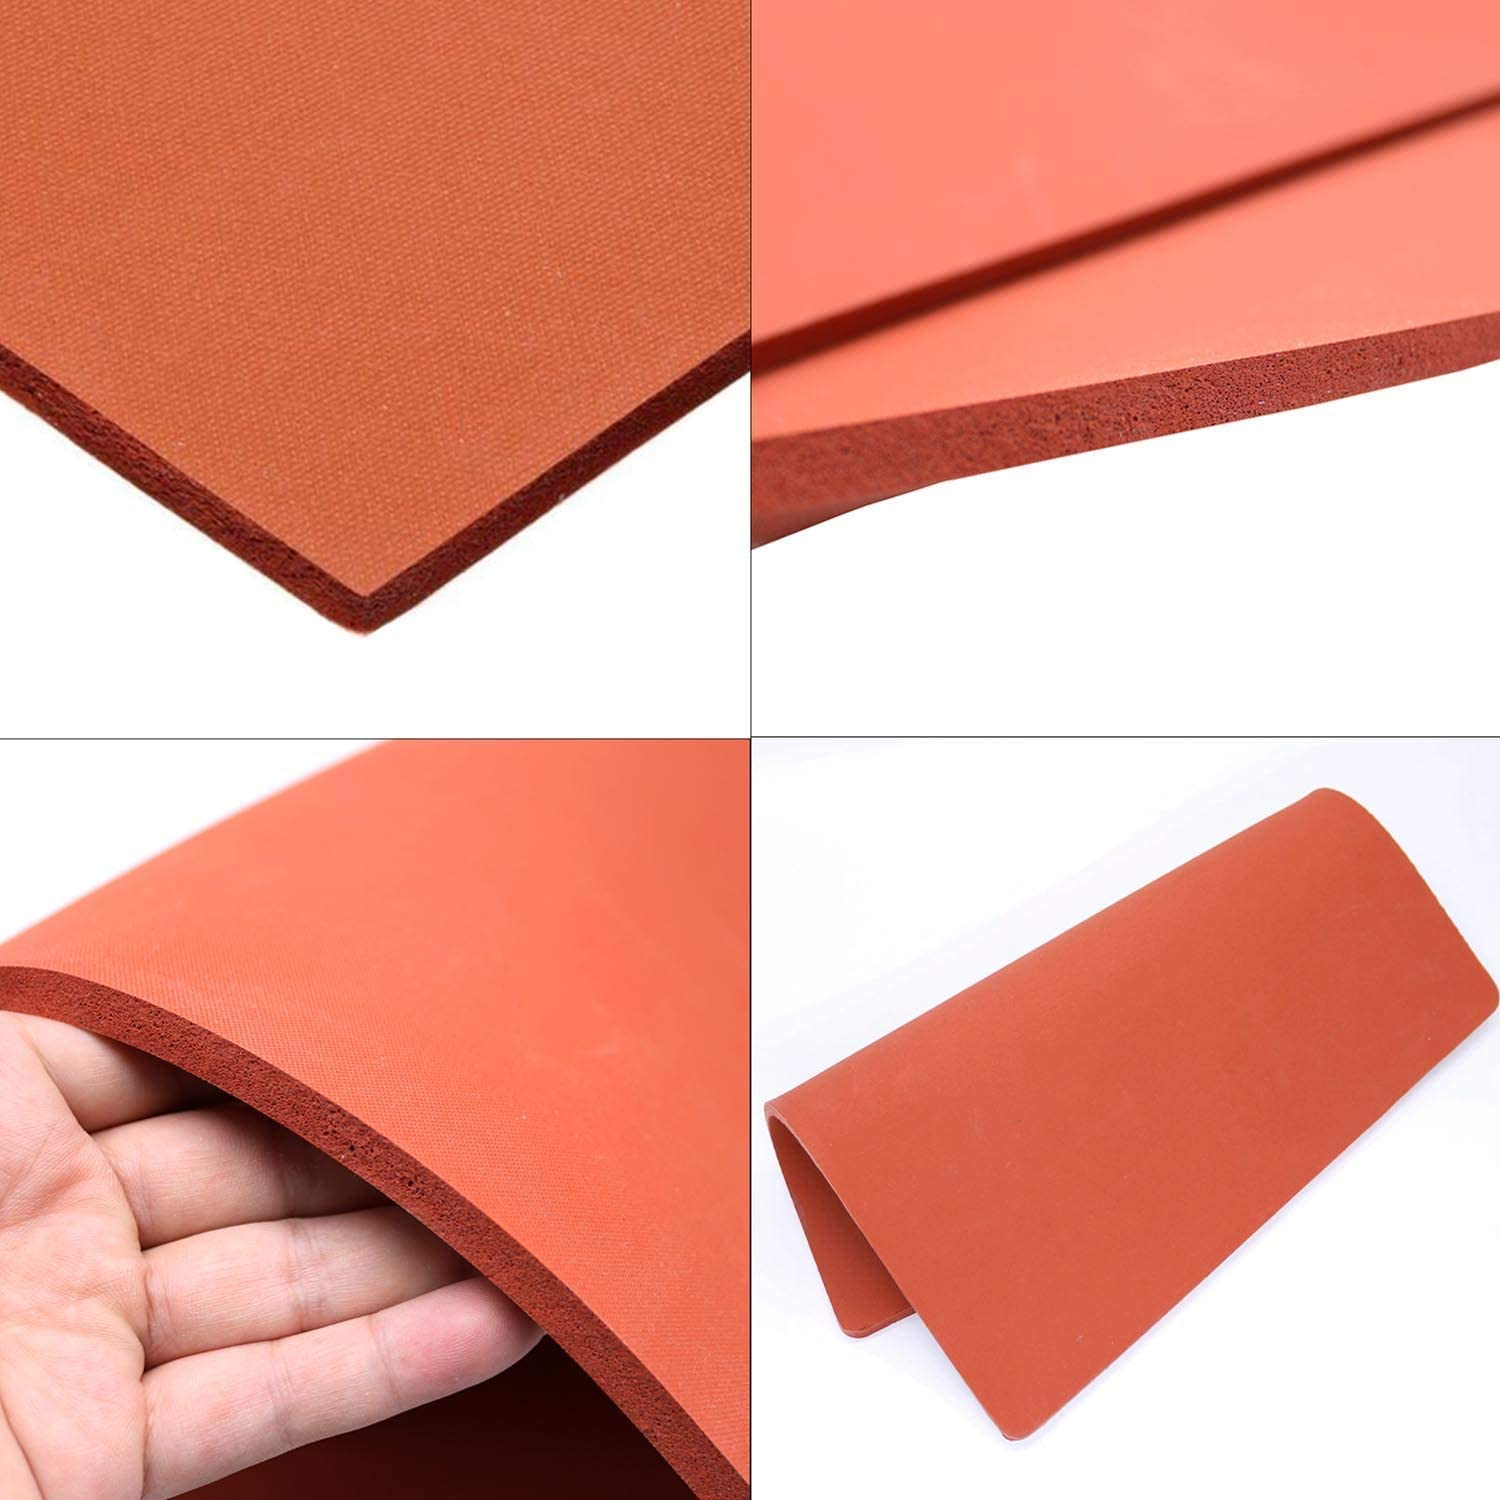 FlySkip 12x15Inch Heat Press Pad Mat 0.3 Thickest Silicone Pad for Heat Press Machine Flat Heat Transfer Press Replacement Pad 12x15Inch